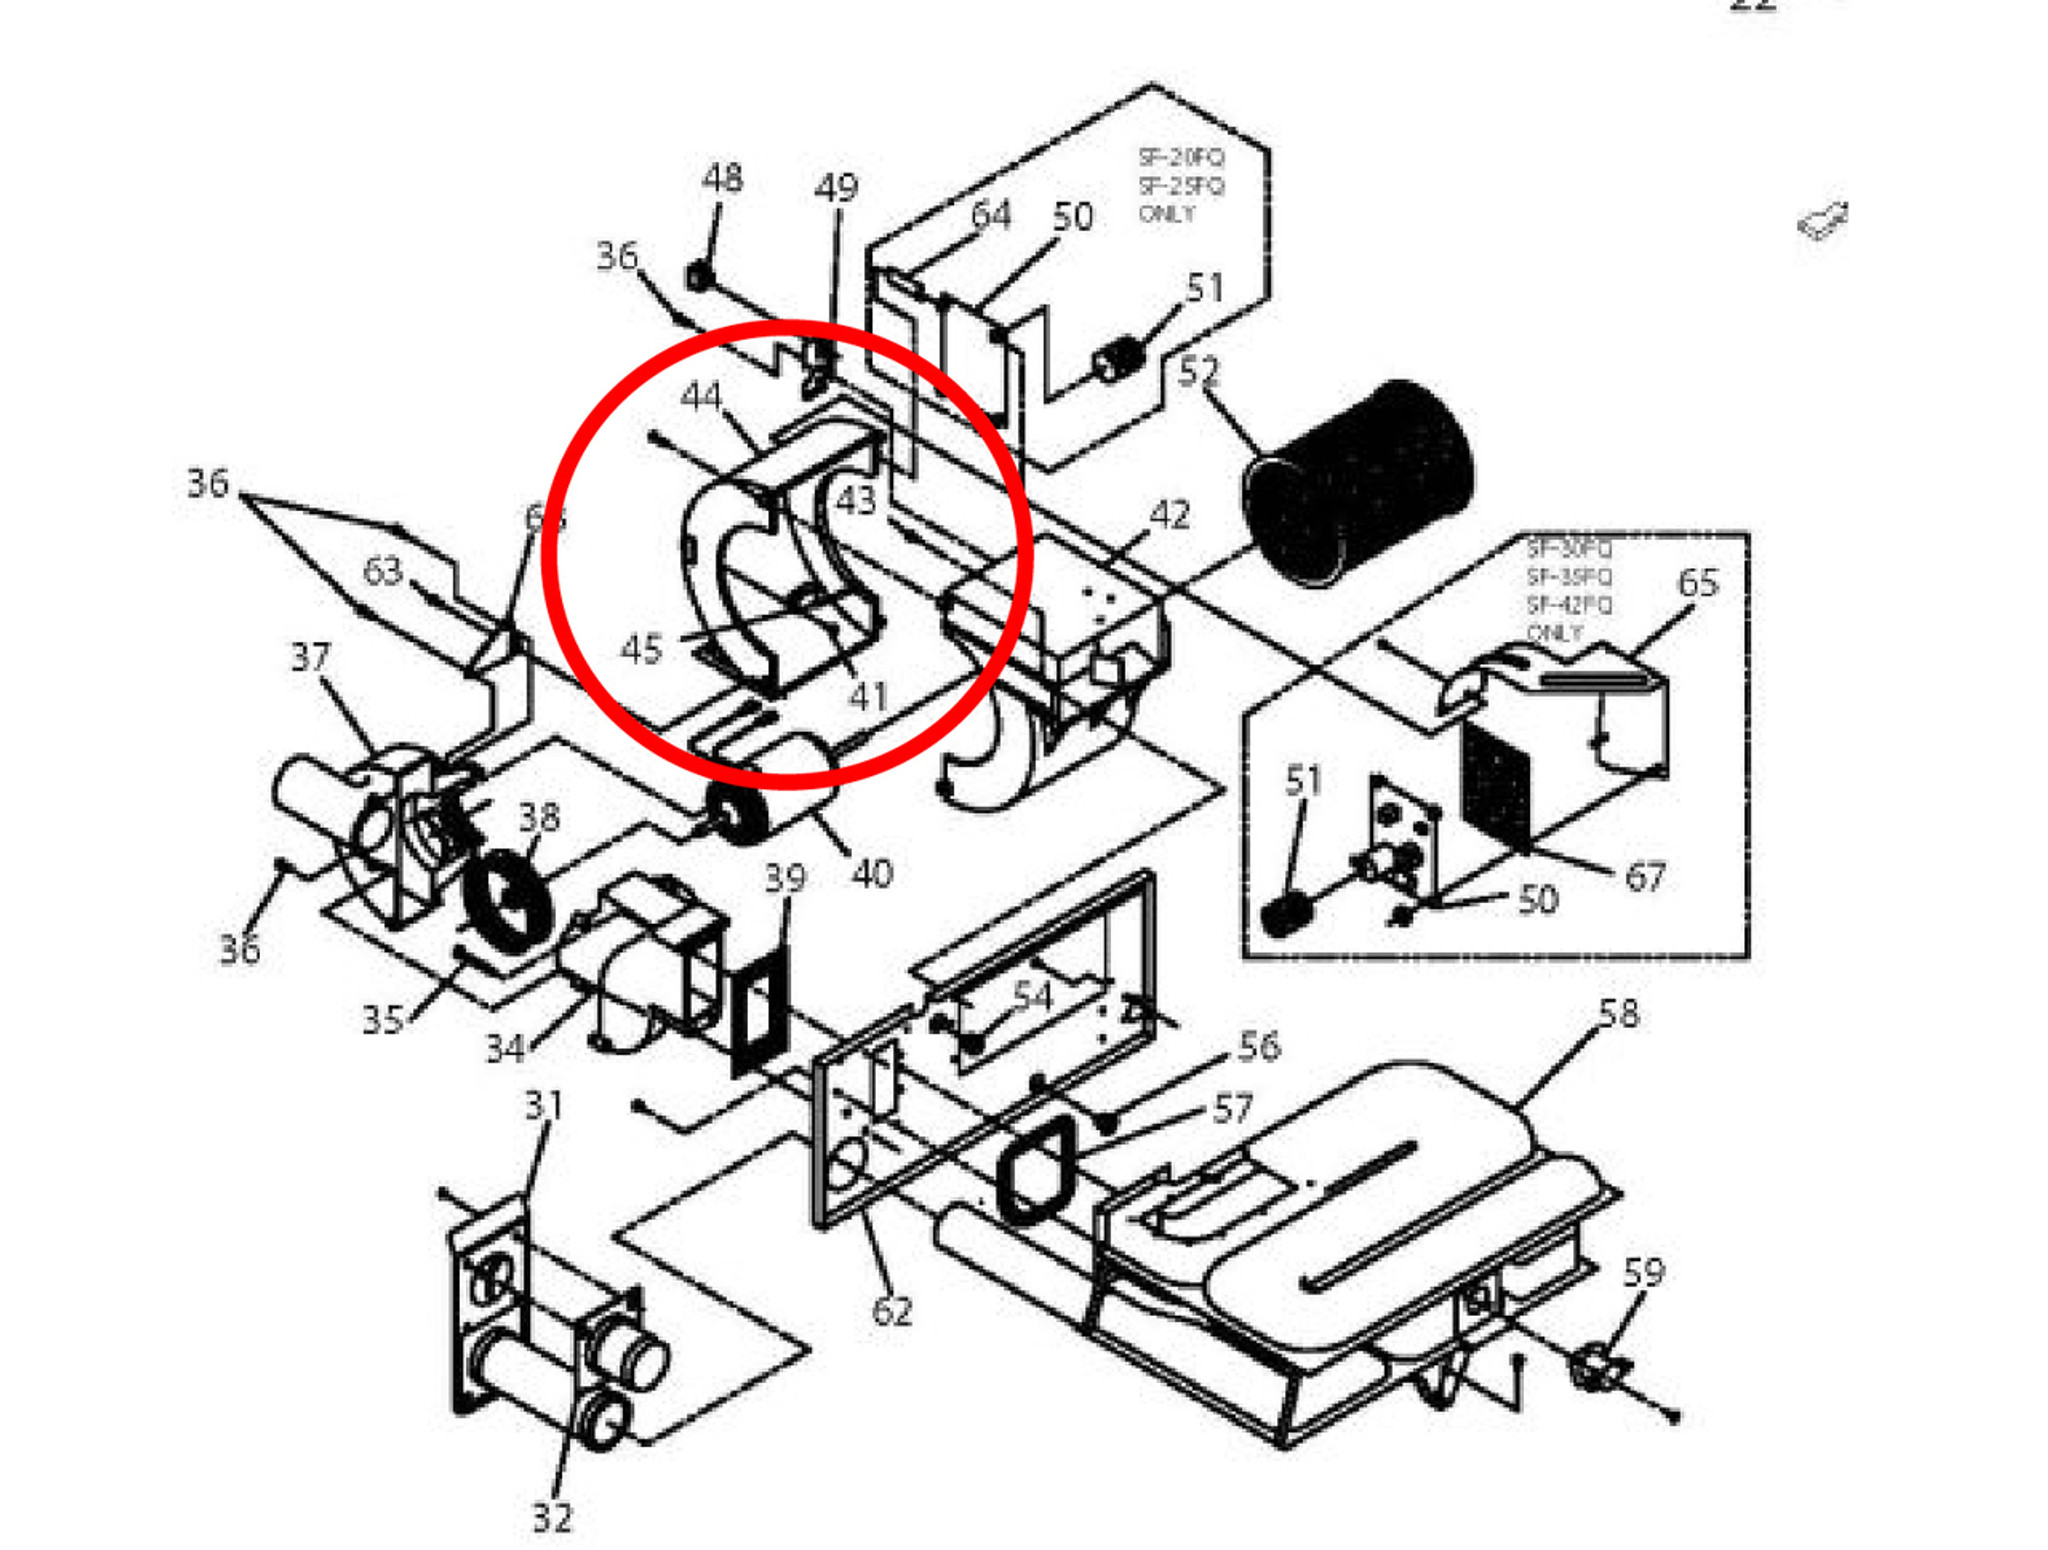 small resolution of suburban rv furnace sf 42 wiring diagram wiring library gas furnace relay wiring diagram suburban rv furnace sf 42 wiring diagram